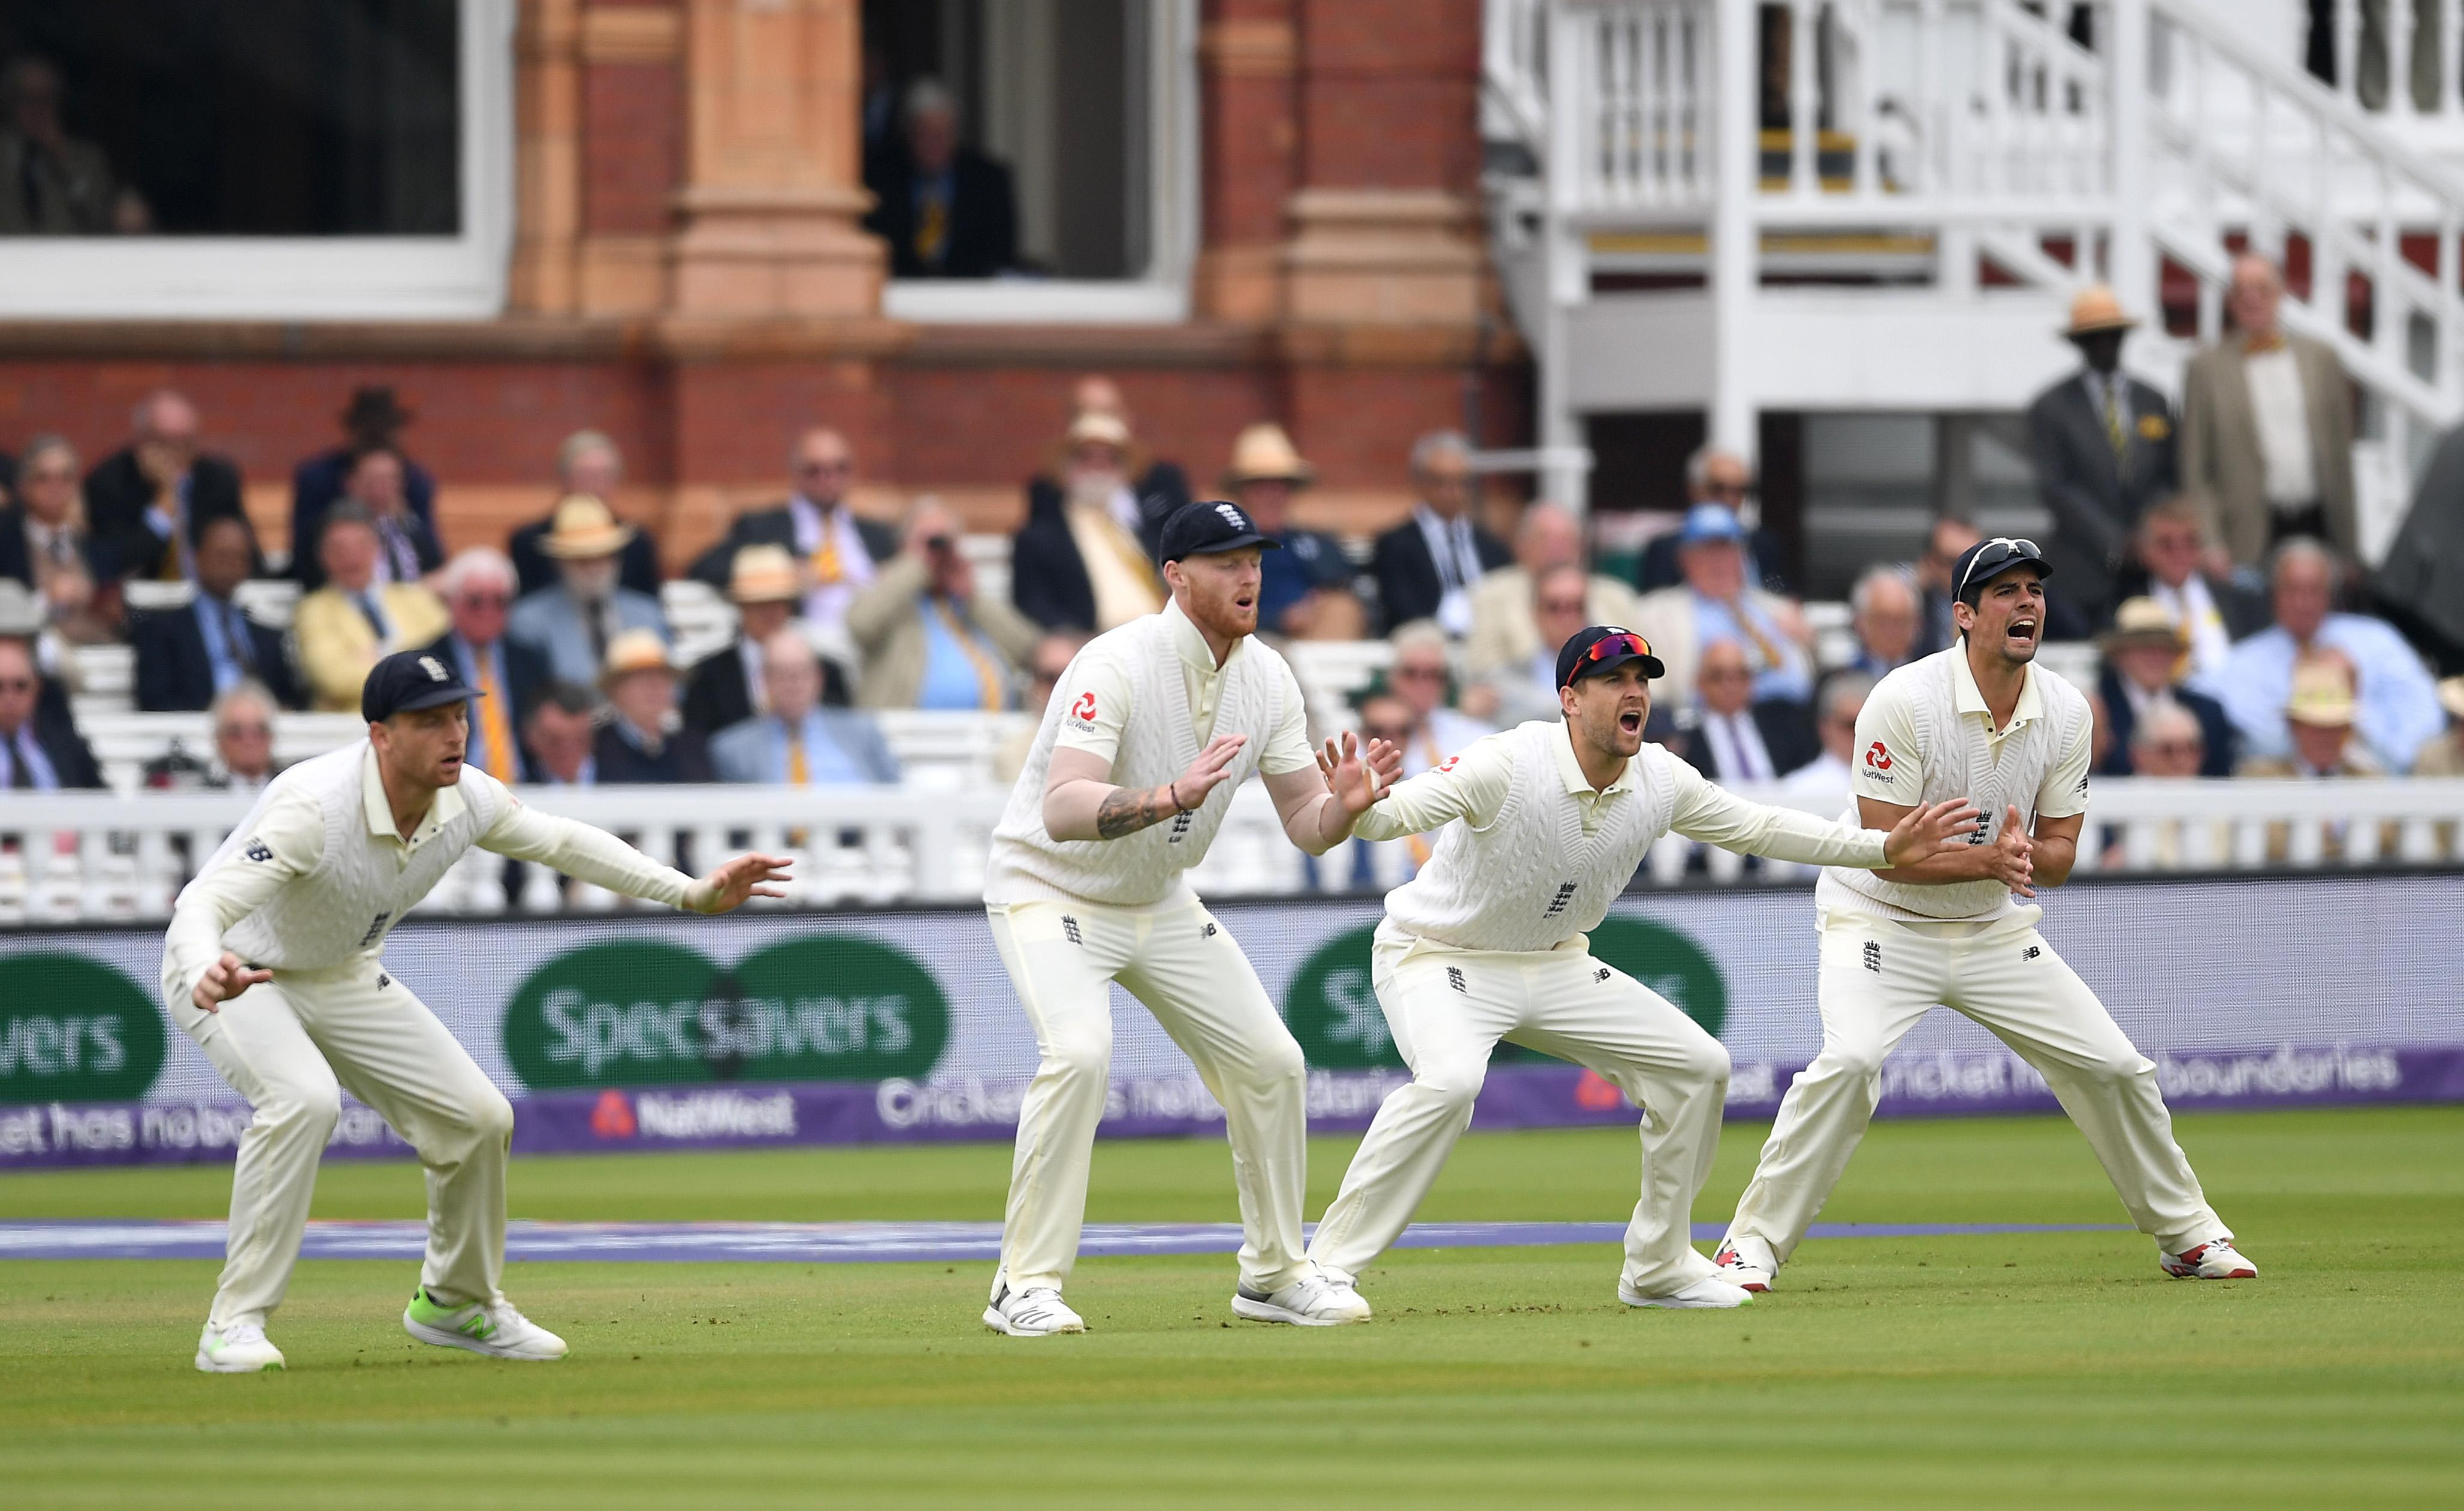 England were frustrated in the field and face a massive task